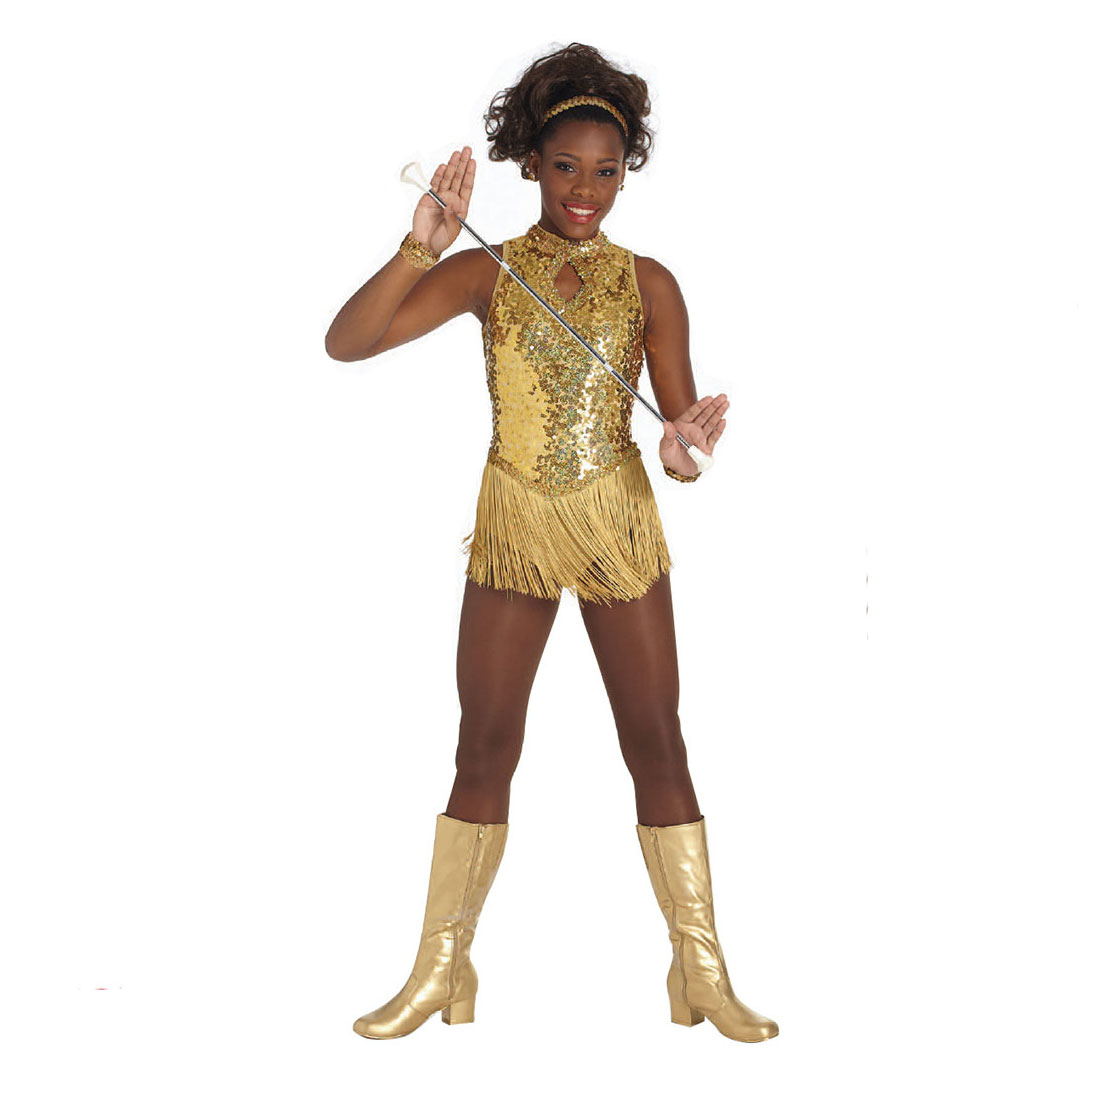 Guard Uniforms: Fascination Leotard w/ Fringe